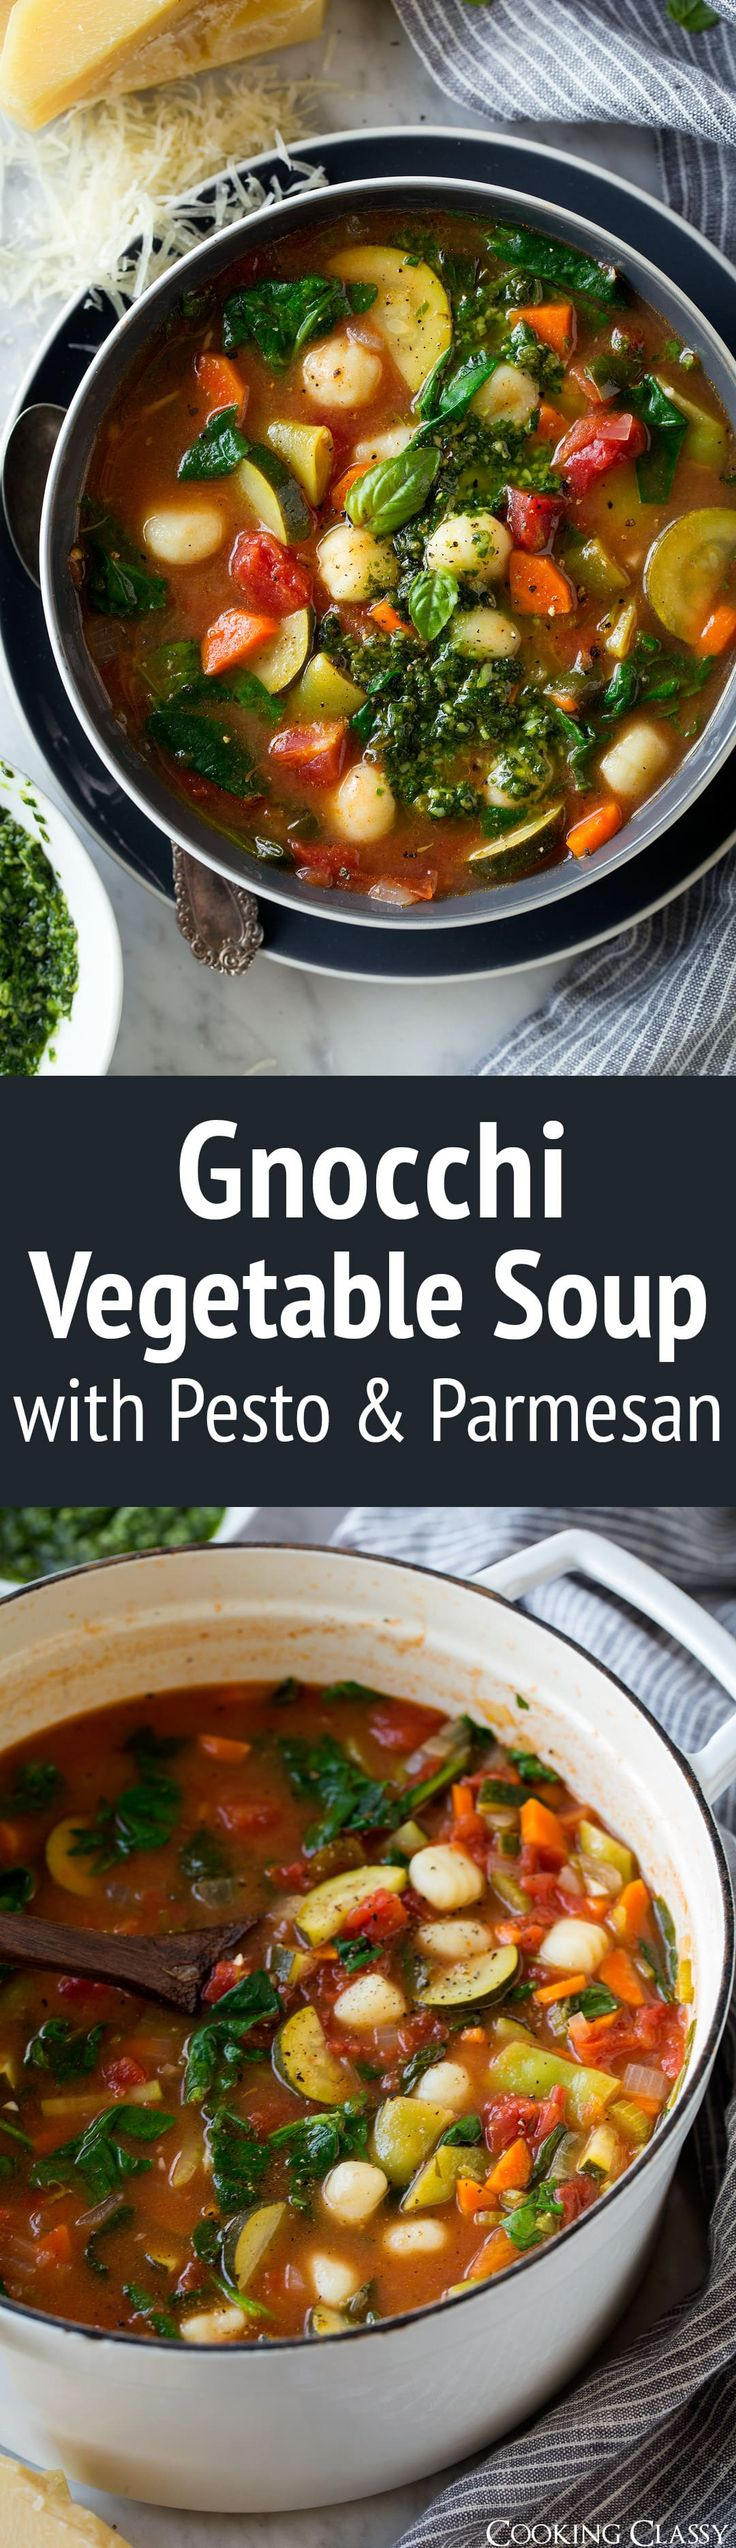 Gnocchi Vegetable Soup with Pesto and NO Parmesan - A hearty minestrone style